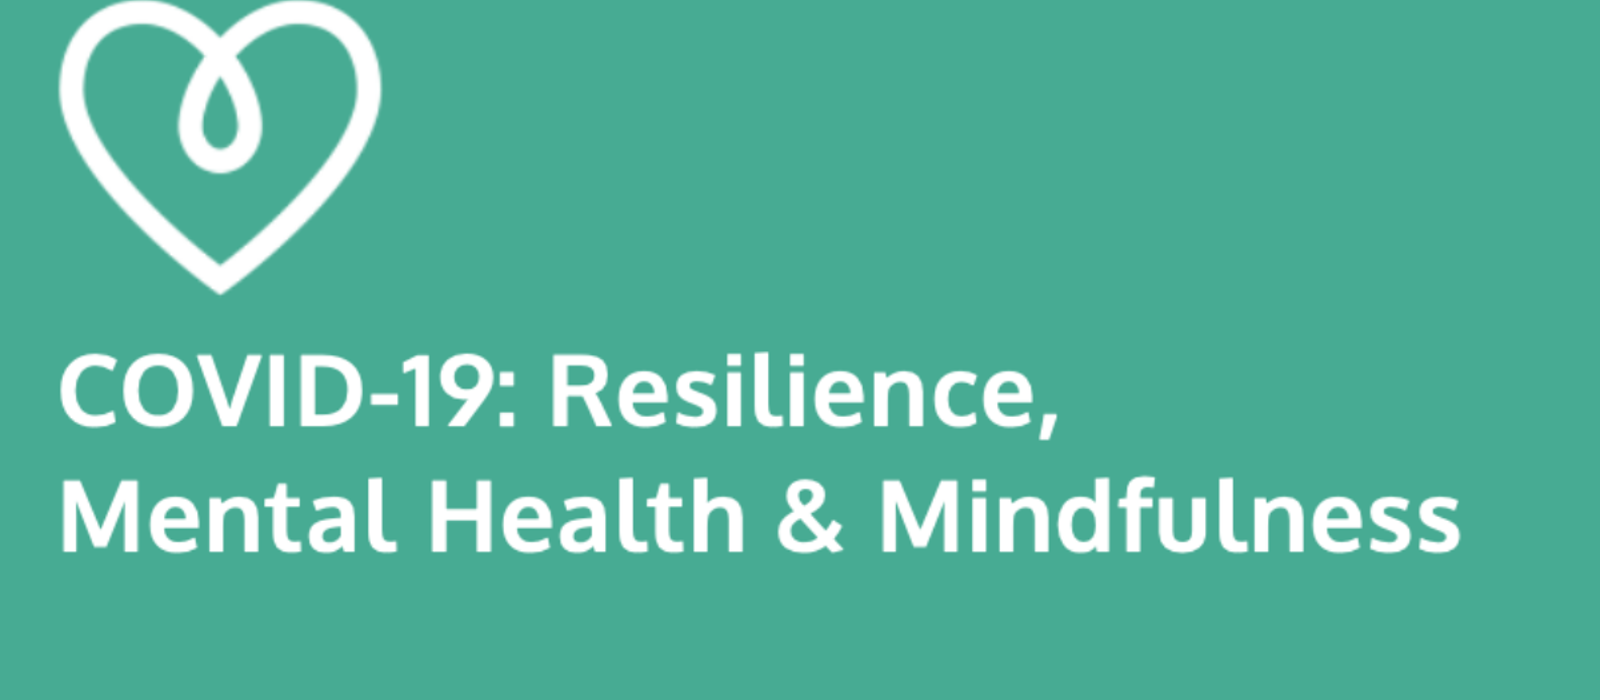 Briefing Paper on Covid-19: Resilience, Mental health & Mindfulness